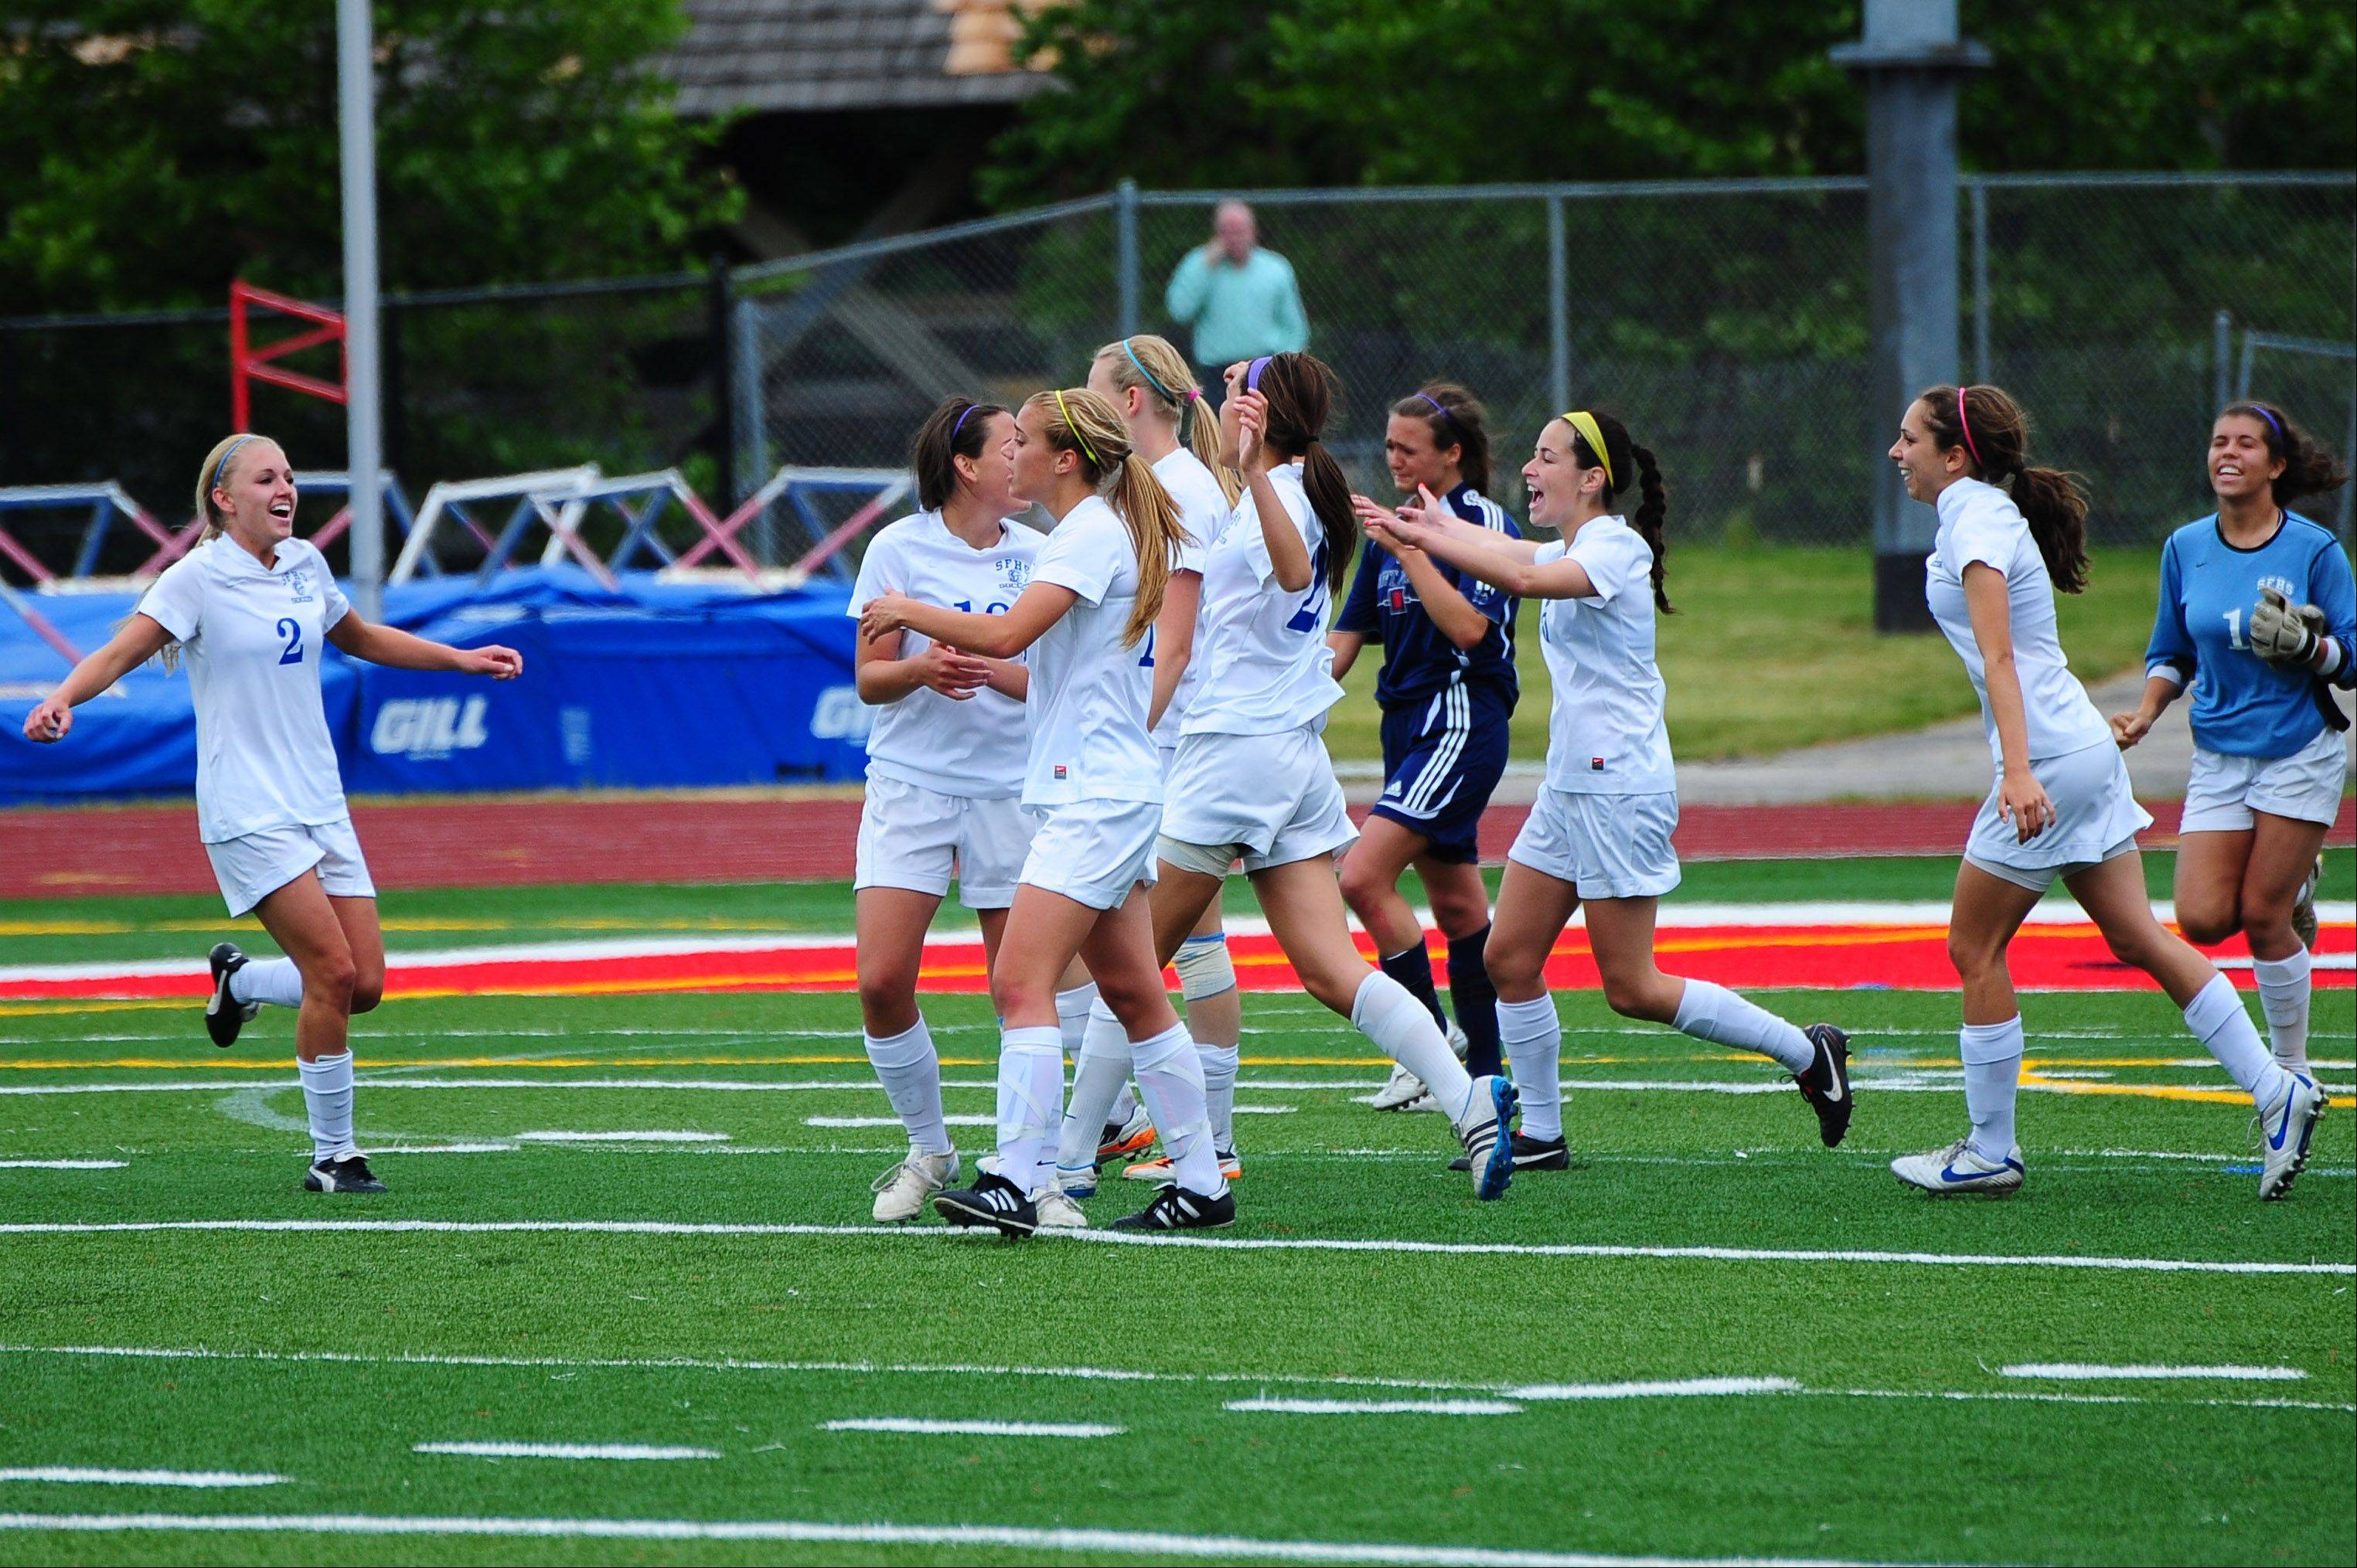 St. Francis teammates rush to celebrate their 1-0 victory over St. Viator during the girls soccer Class 2A semifinal on Friday.